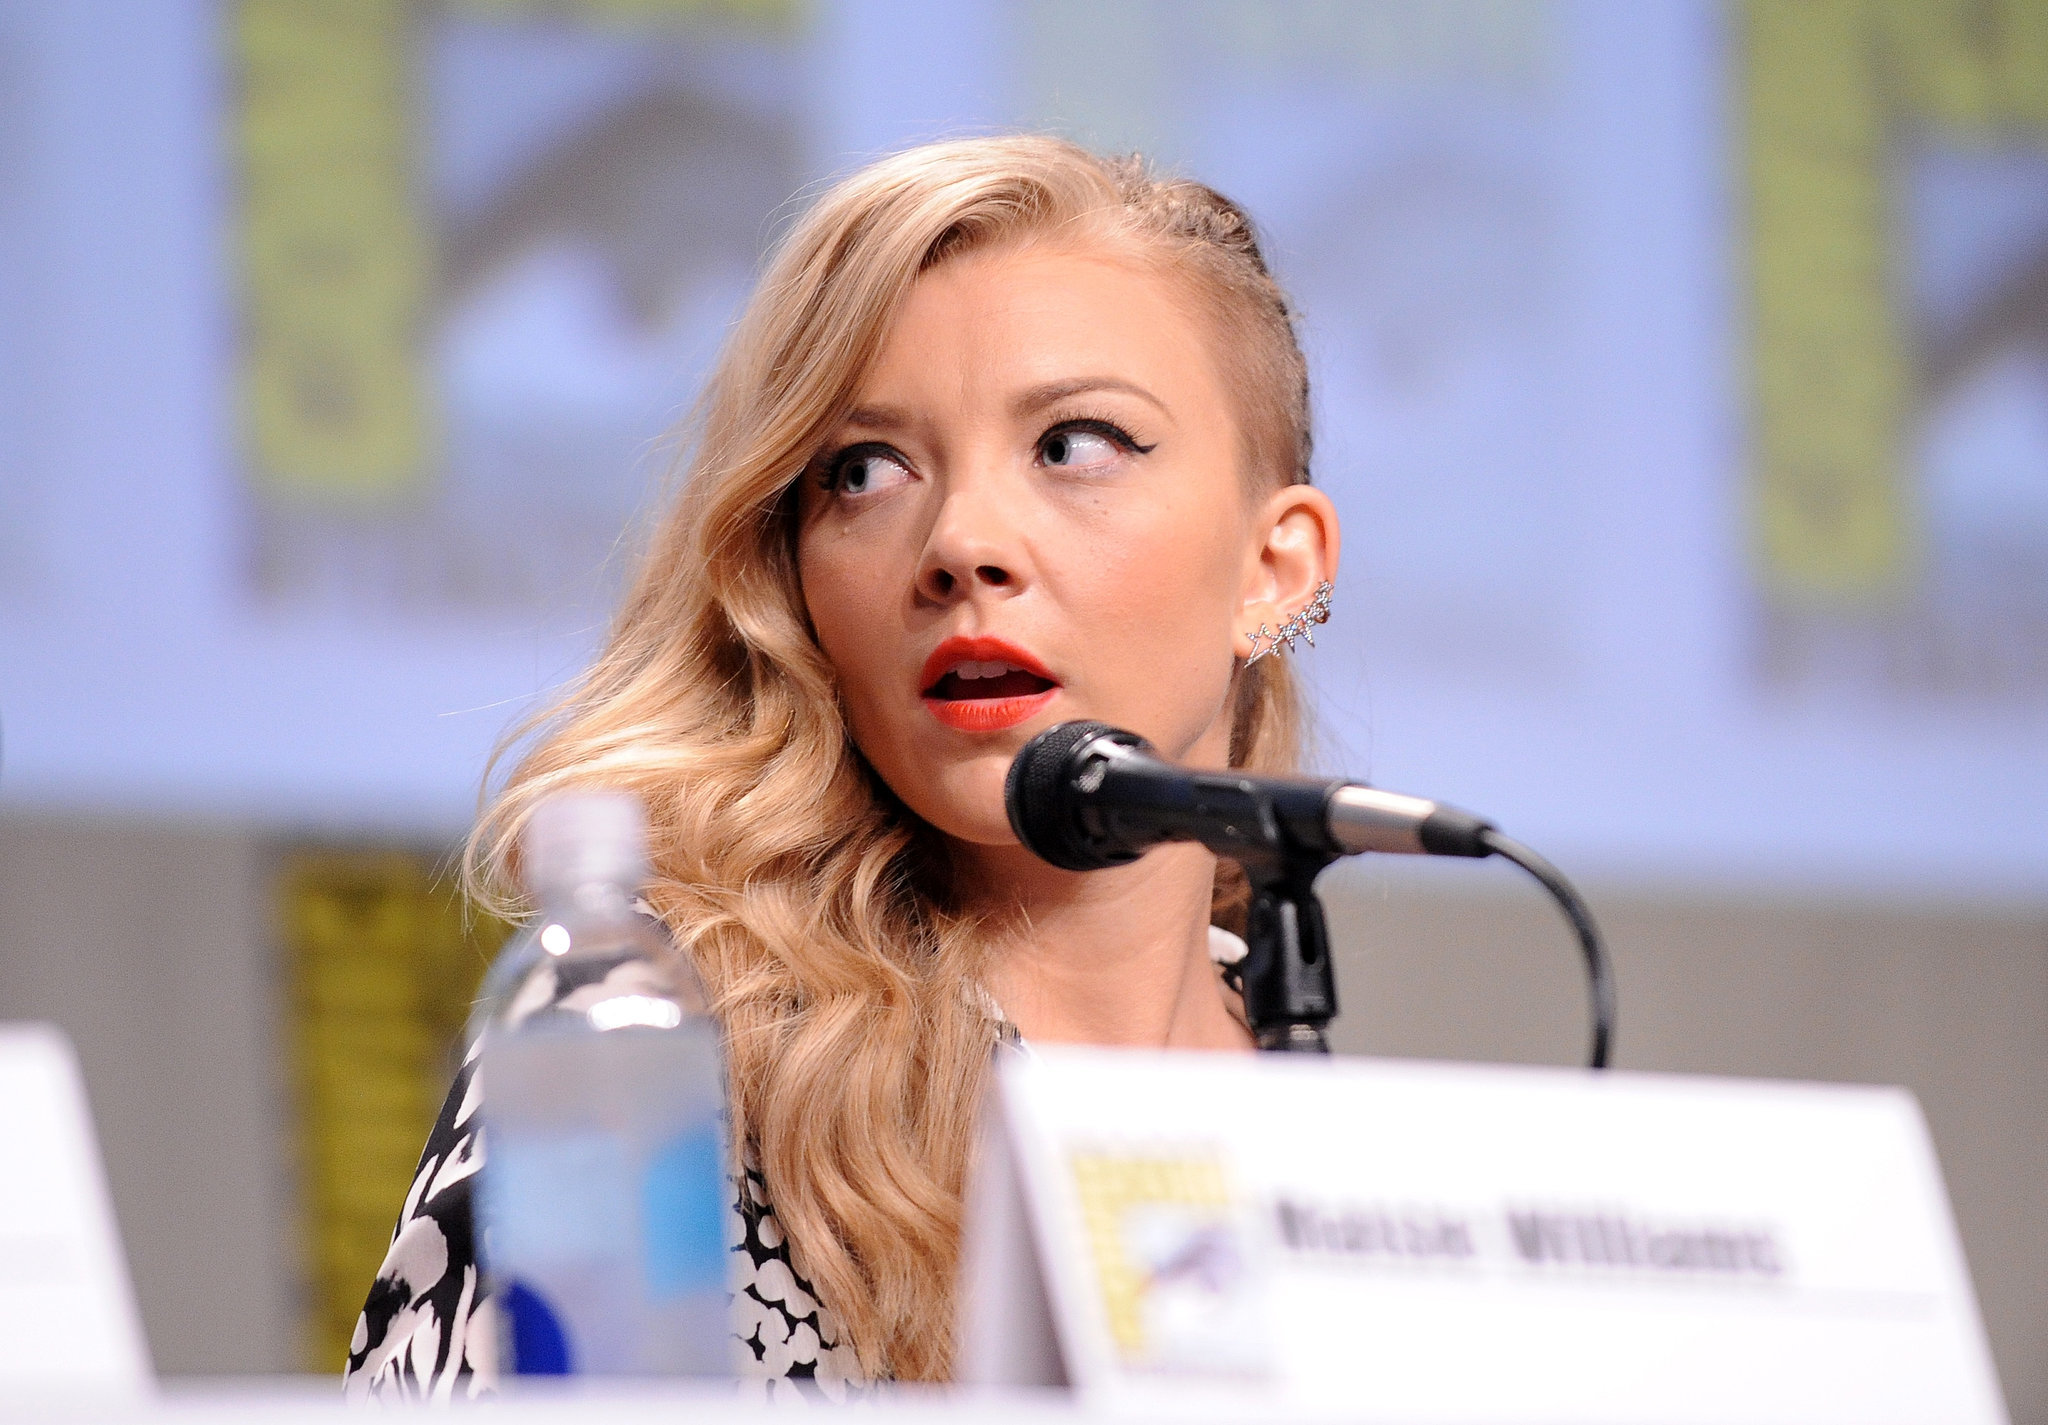 Natalie Dormer, Margaery Tyrell of Game of Thrones, Cressida of Hunger Games